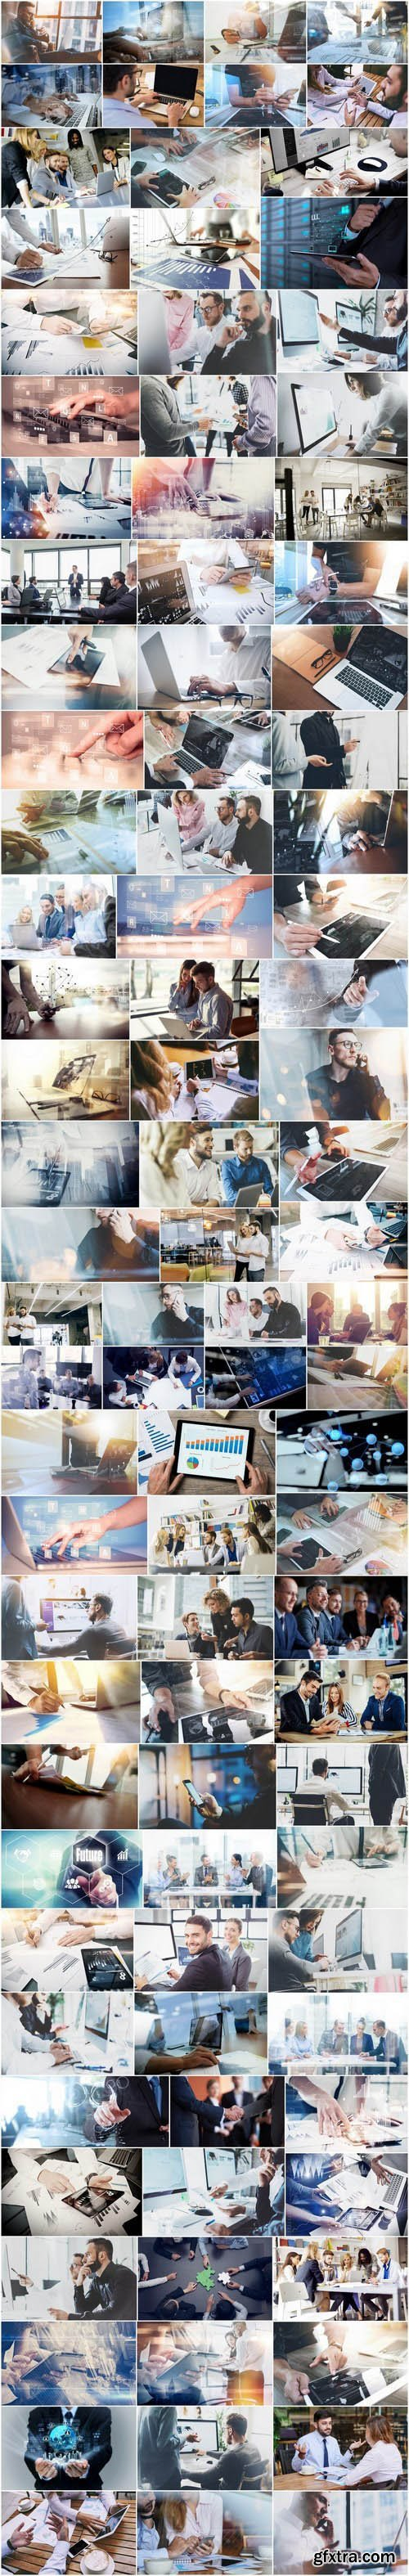 Business team, StartUp and Corporation - 100xUHQ JPEG Professional Stock Images